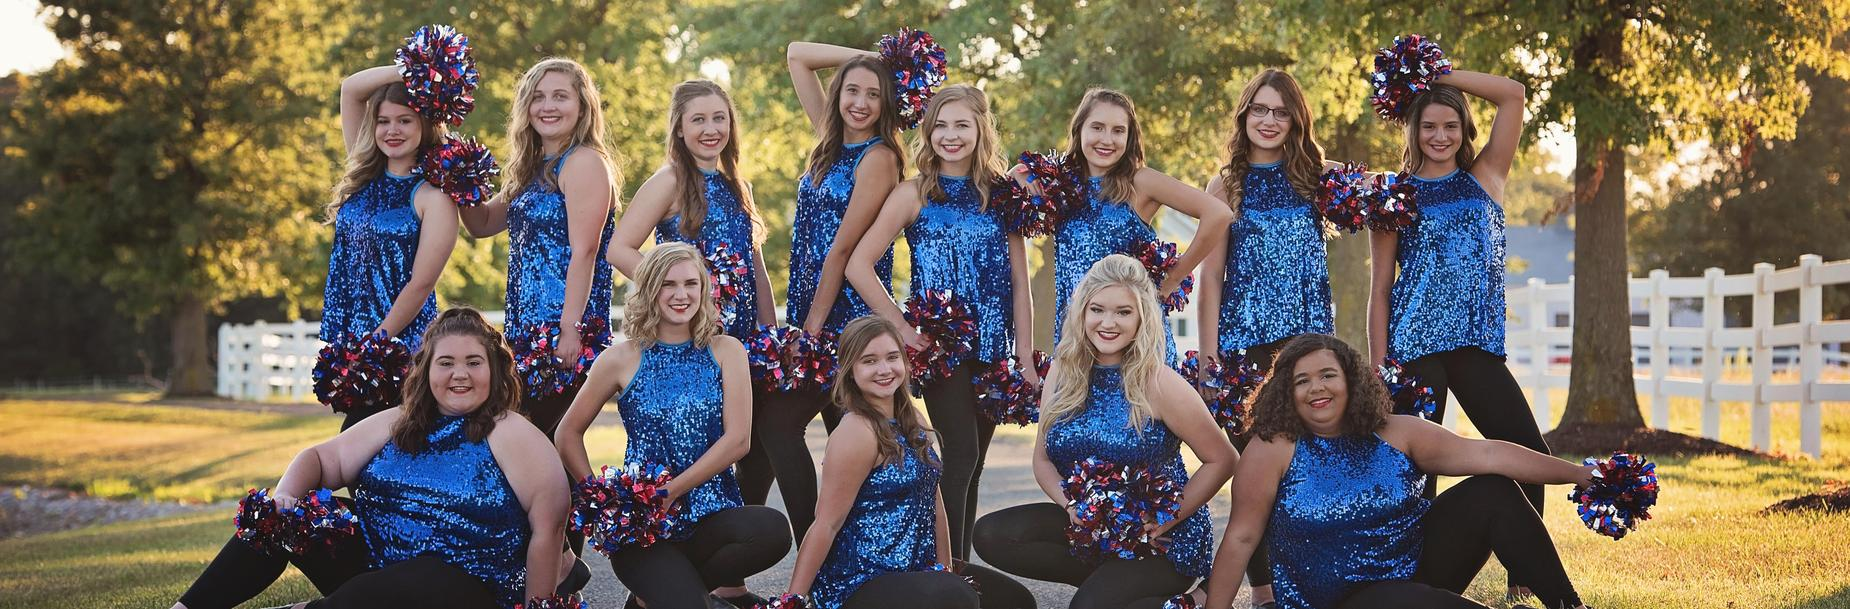 2019-2020 Carlinville High School Cavalettes